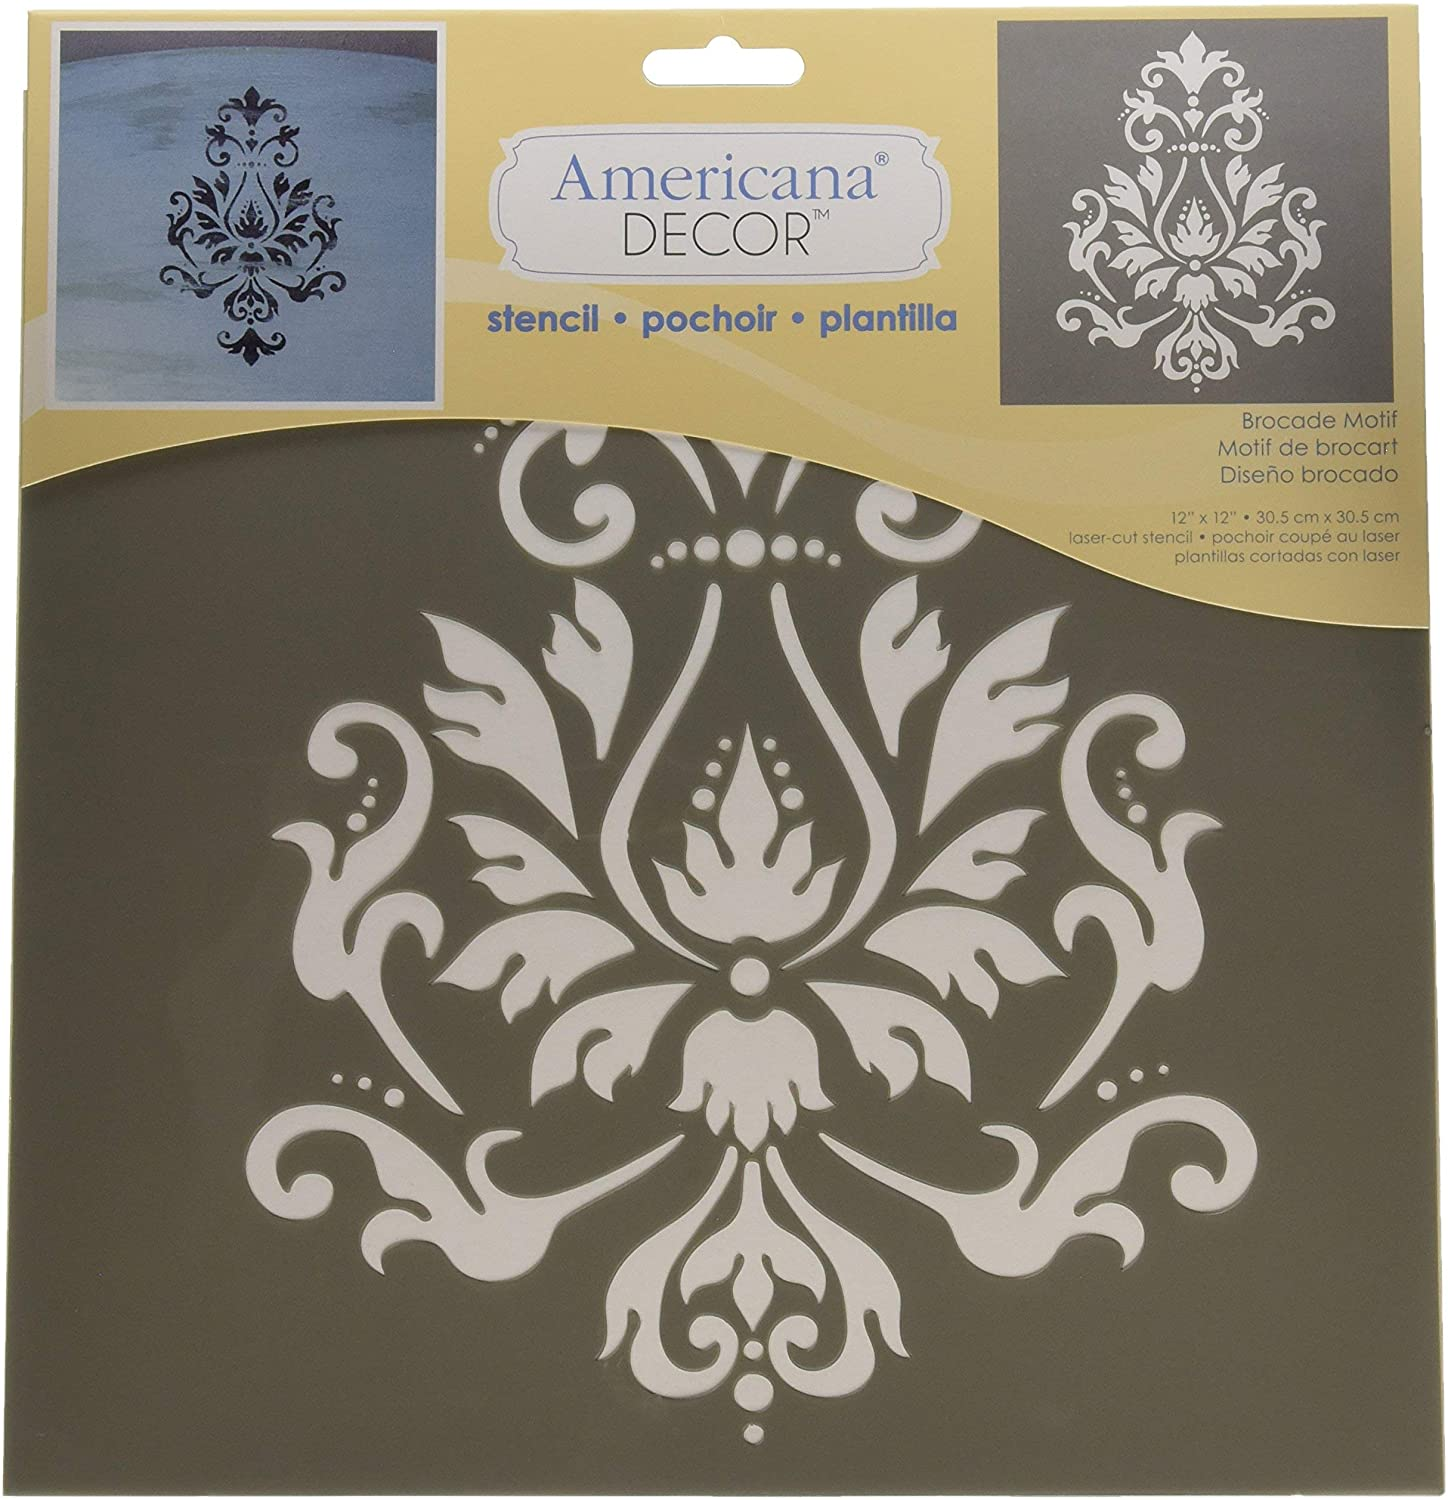 DecoArt Deco Art ADS-01 Americana Decor Stencil, Brocade Motif, 1